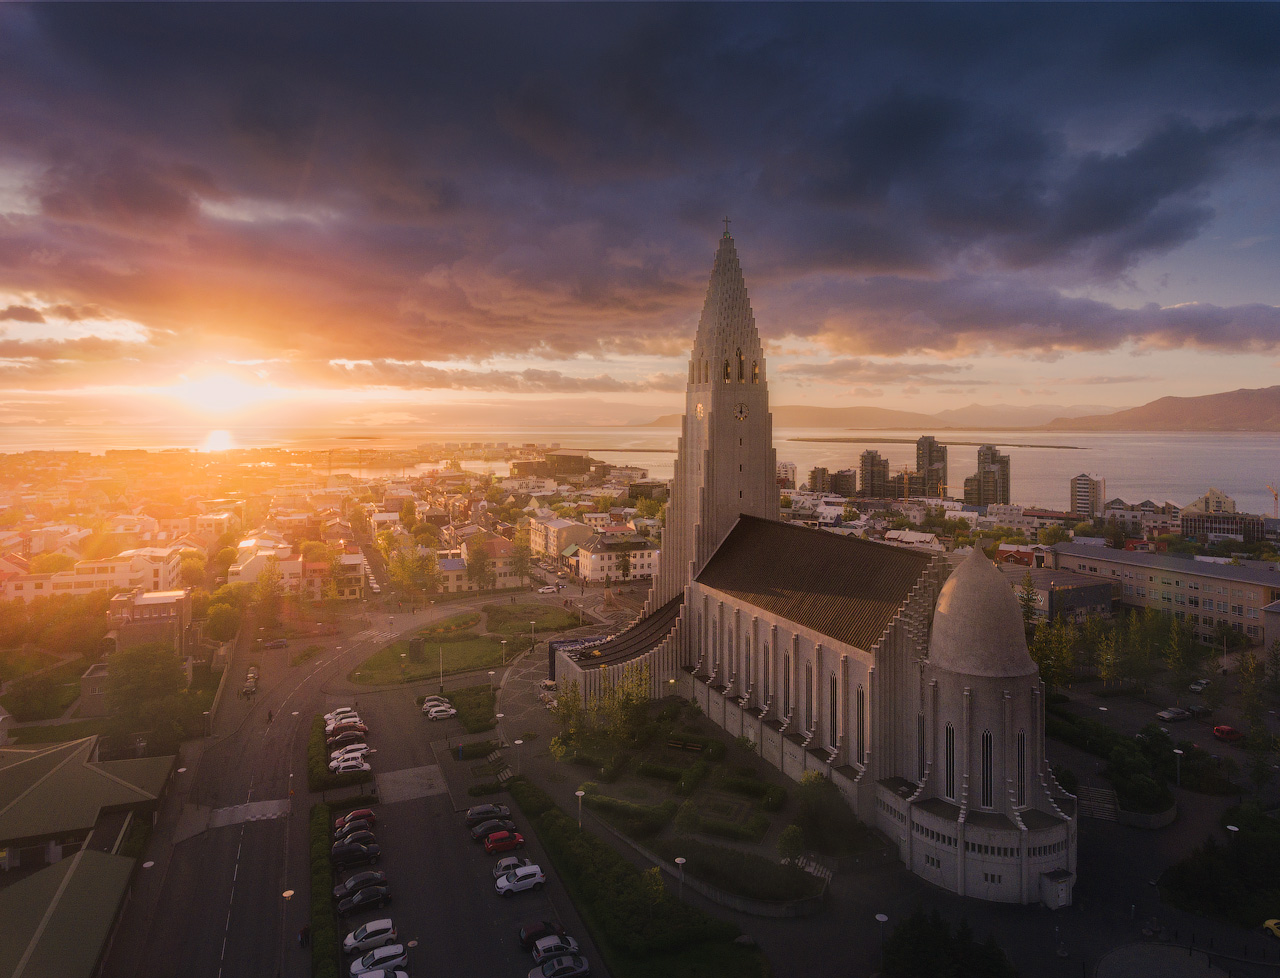 Hallgrimskirkja is a Lutheran Church in Iceland's capital.